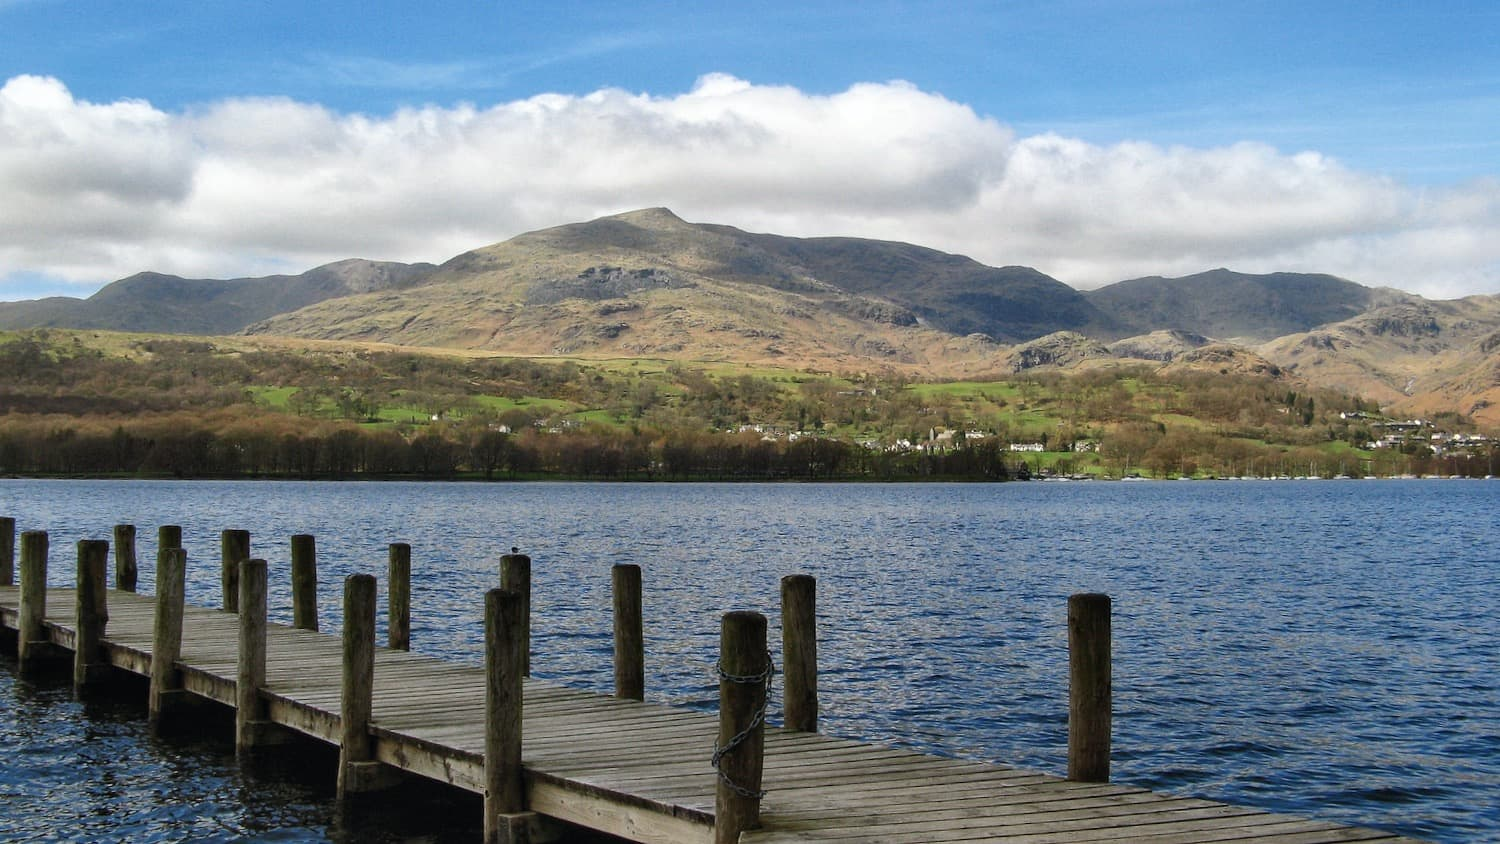 Visiting Coniston Water from Coniston